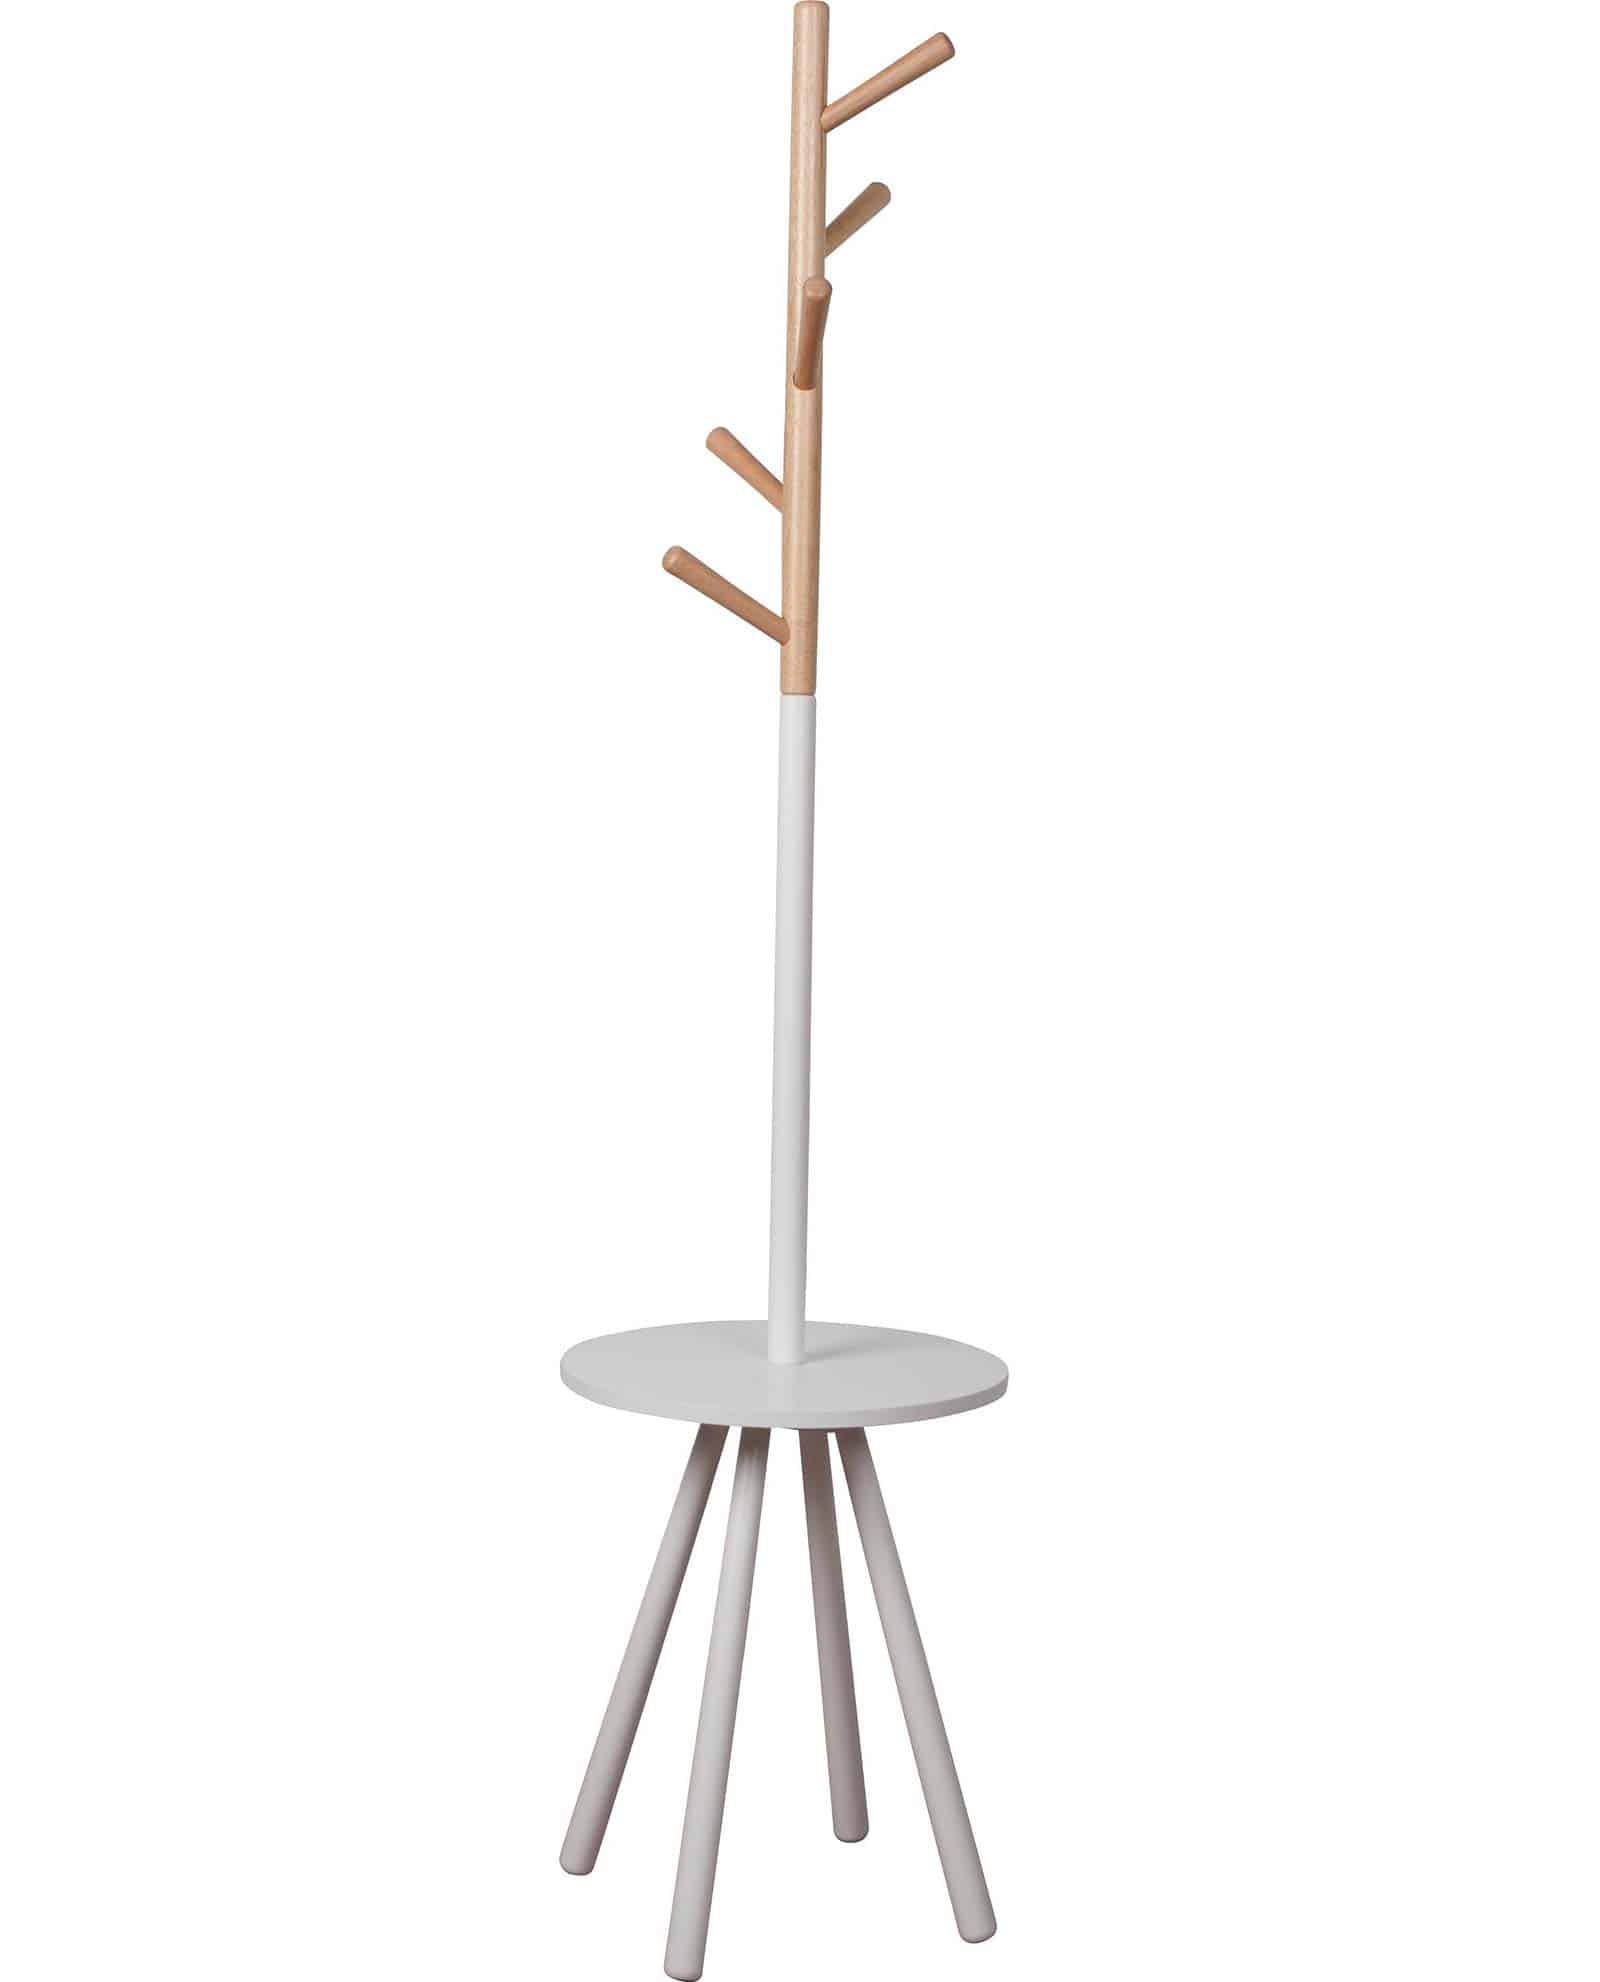 Goedkope Kapstok Table Tree Kapstok White By Zuiver Designshopp